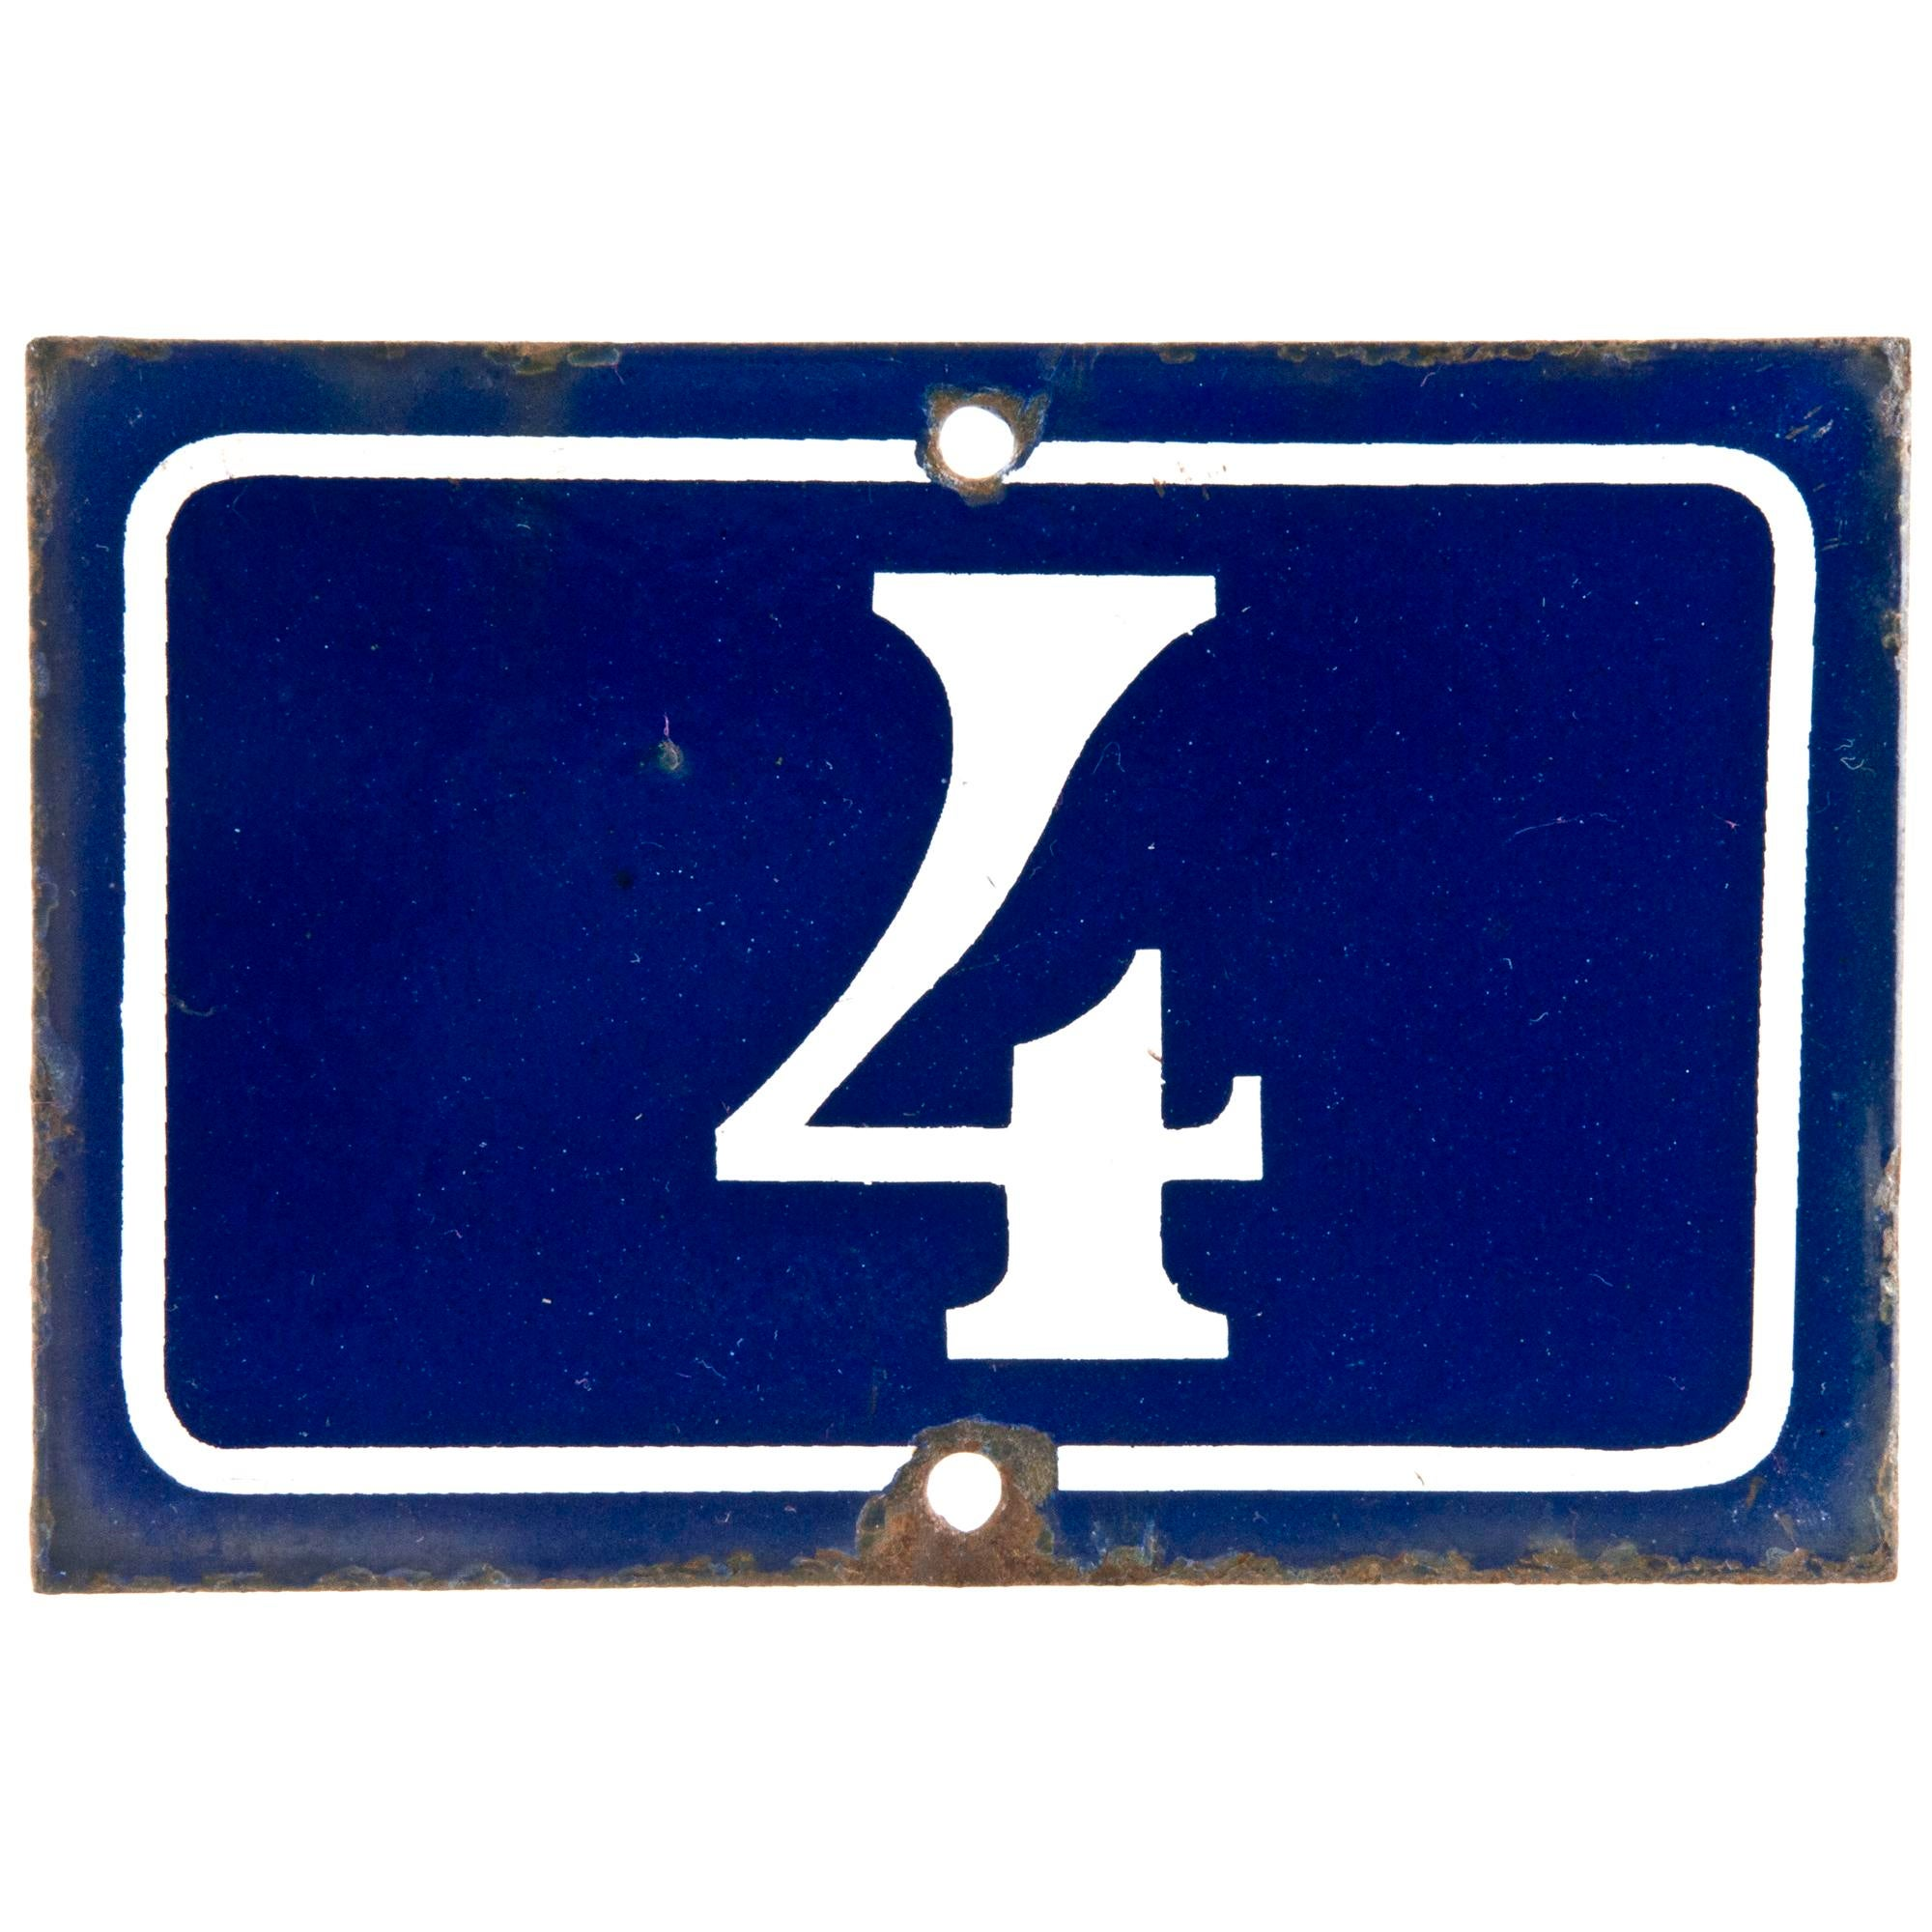 French enamel number 4 house sign chairish for Number 1 online shopping site